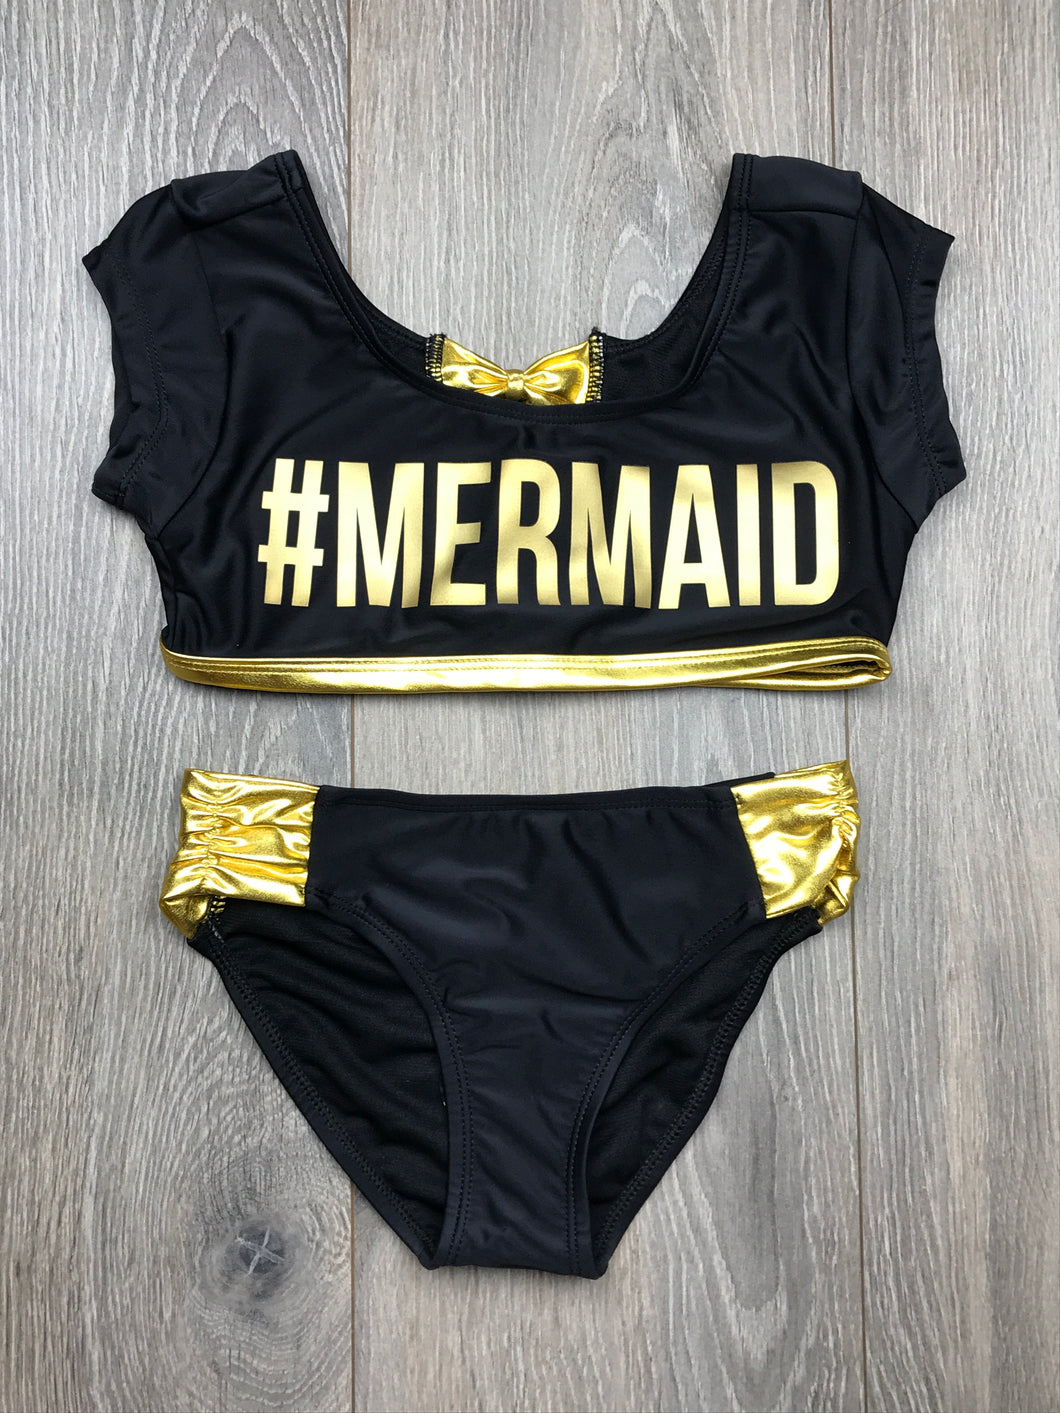 Ingear Mermaid Girls Bathing Suit